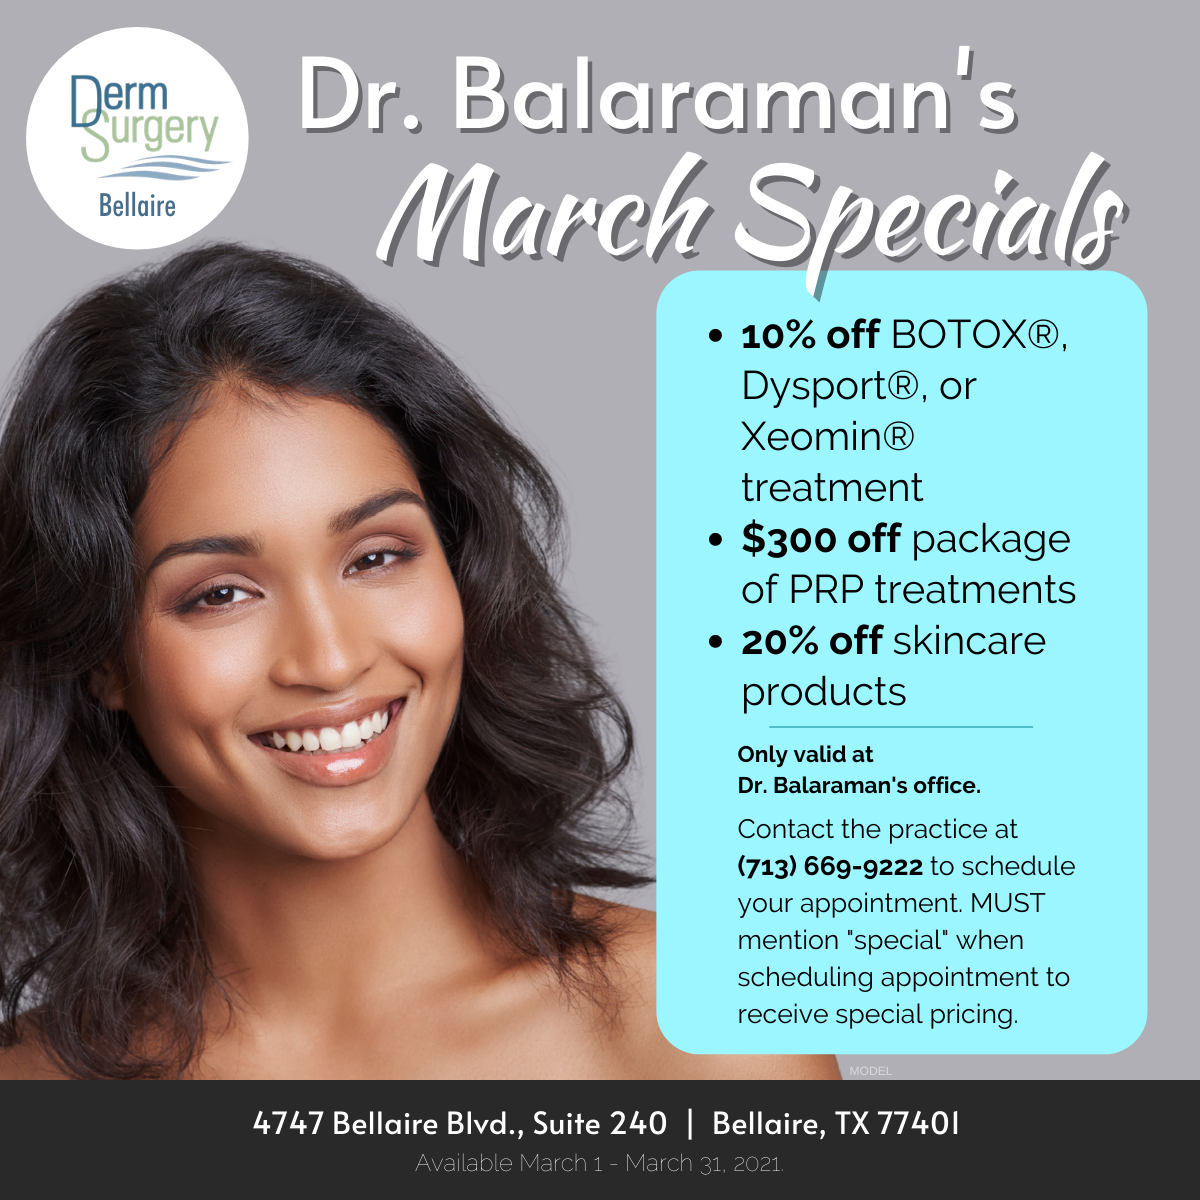 Dr. Balaraman's March Specials